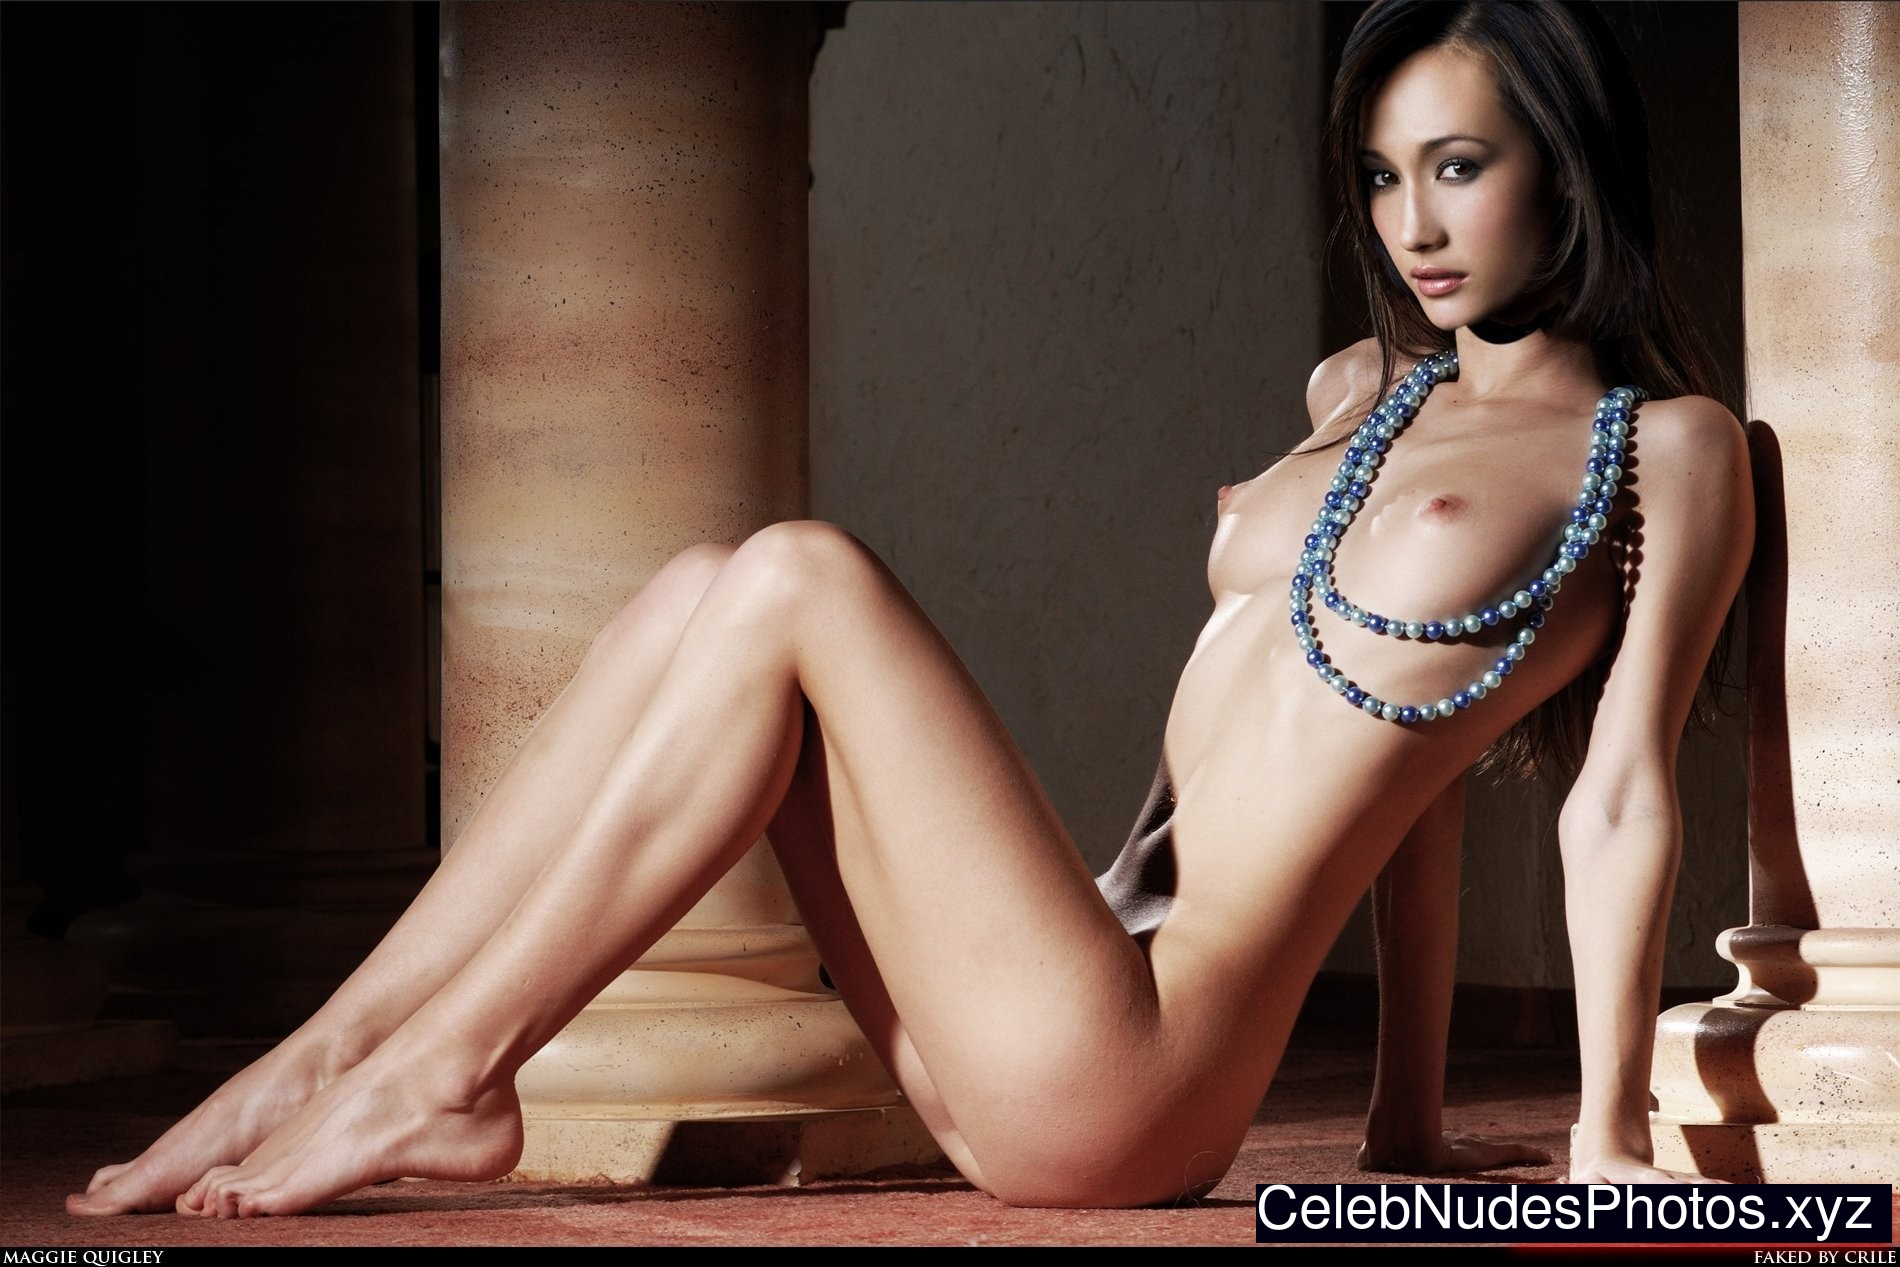 maggie naked